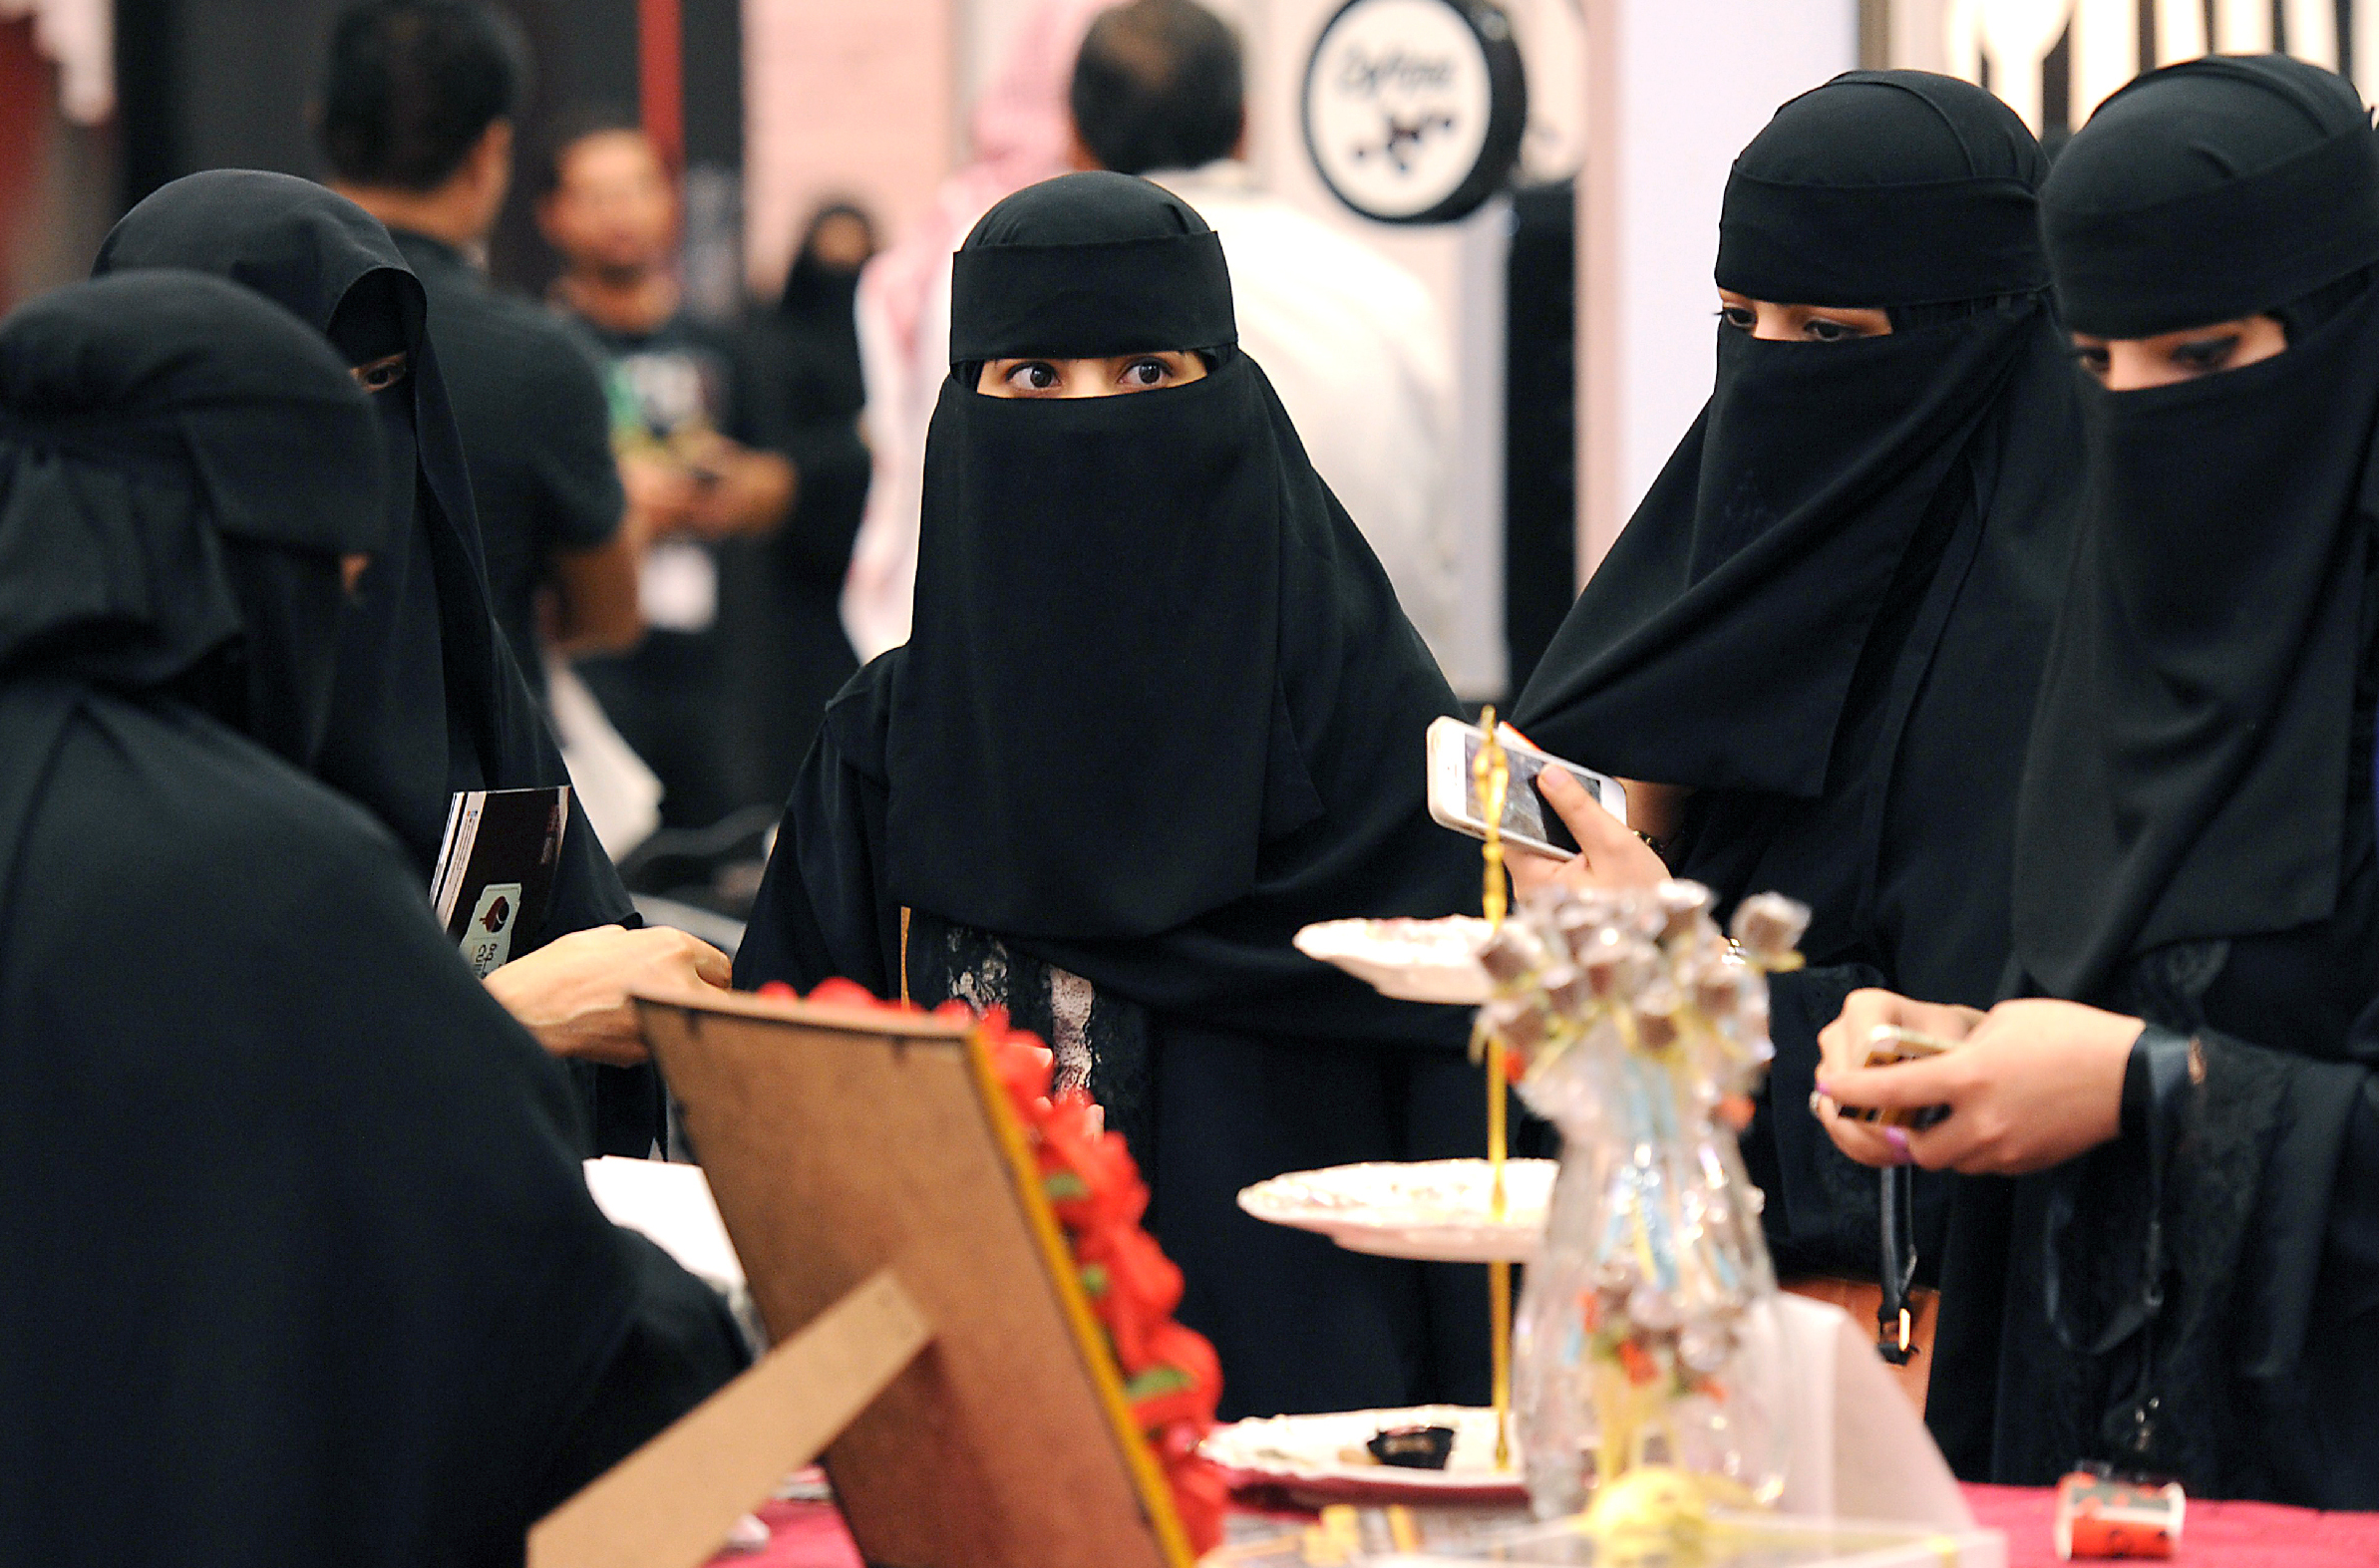 A Tweet On Women's Veils, Followed By Raging Debate In ...